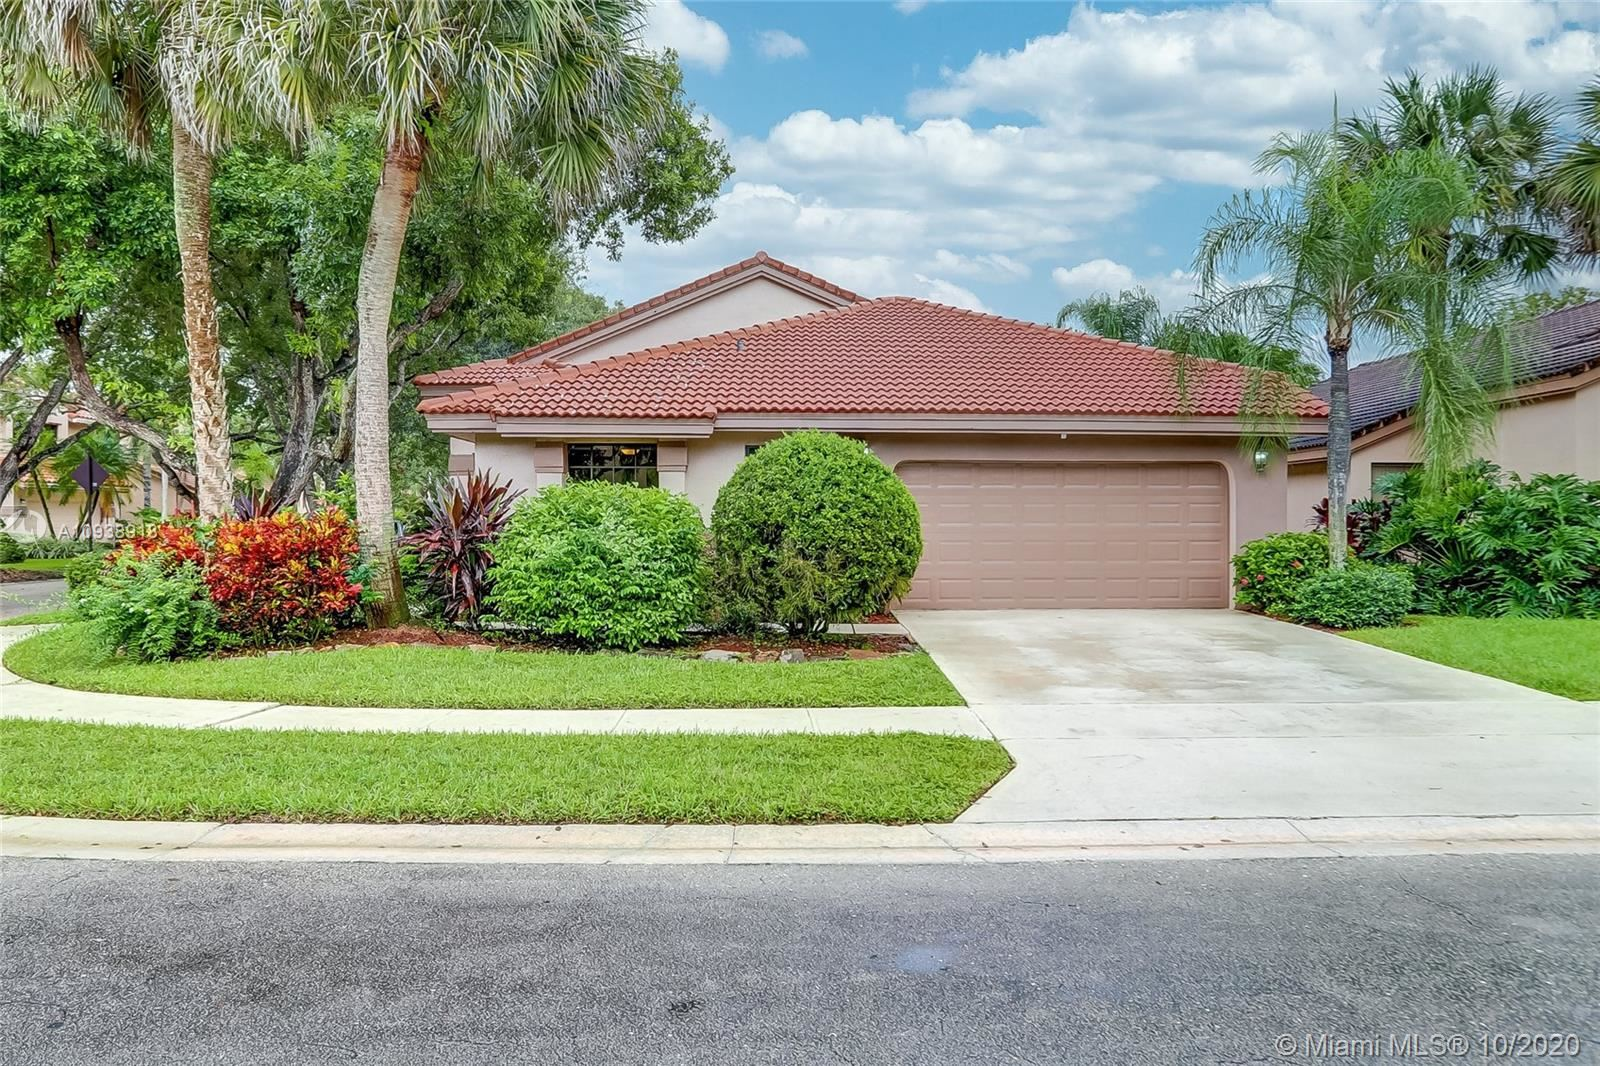 1640 NW 104th Ave, Plantation, FL 33322 - #: A10938918